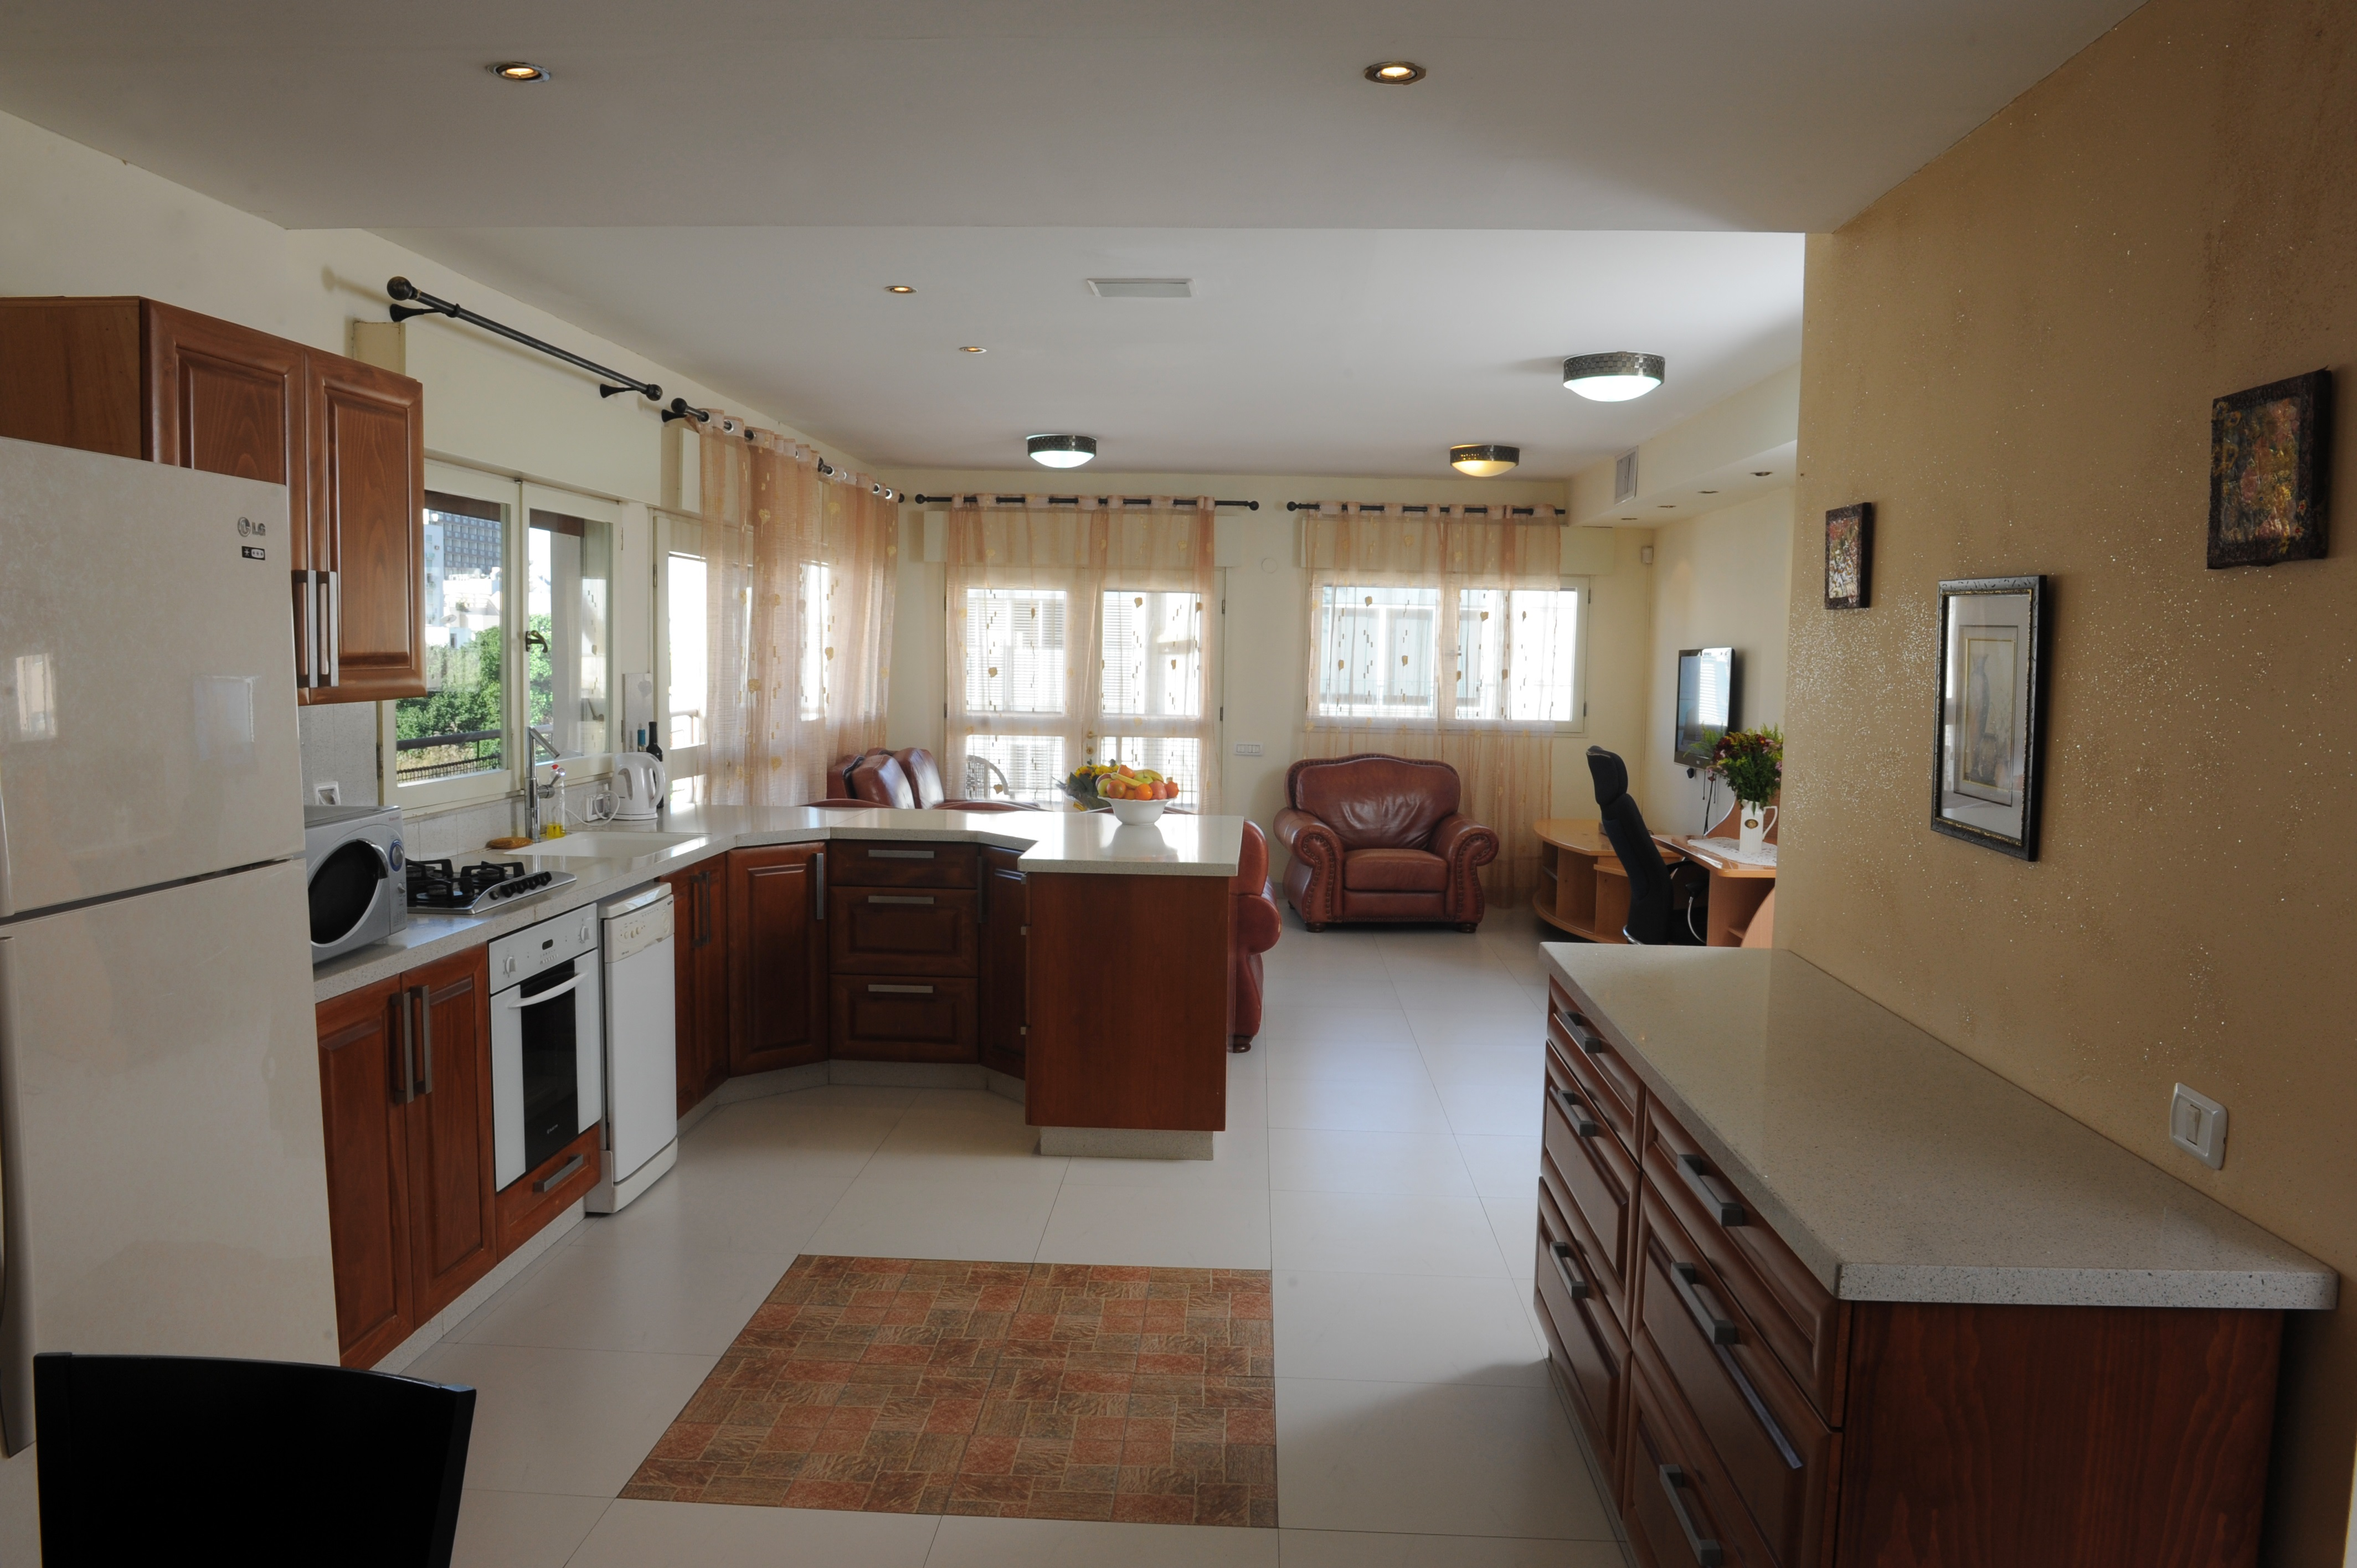 Architecturally Designed Fully Furnished Apt in Seaside Location